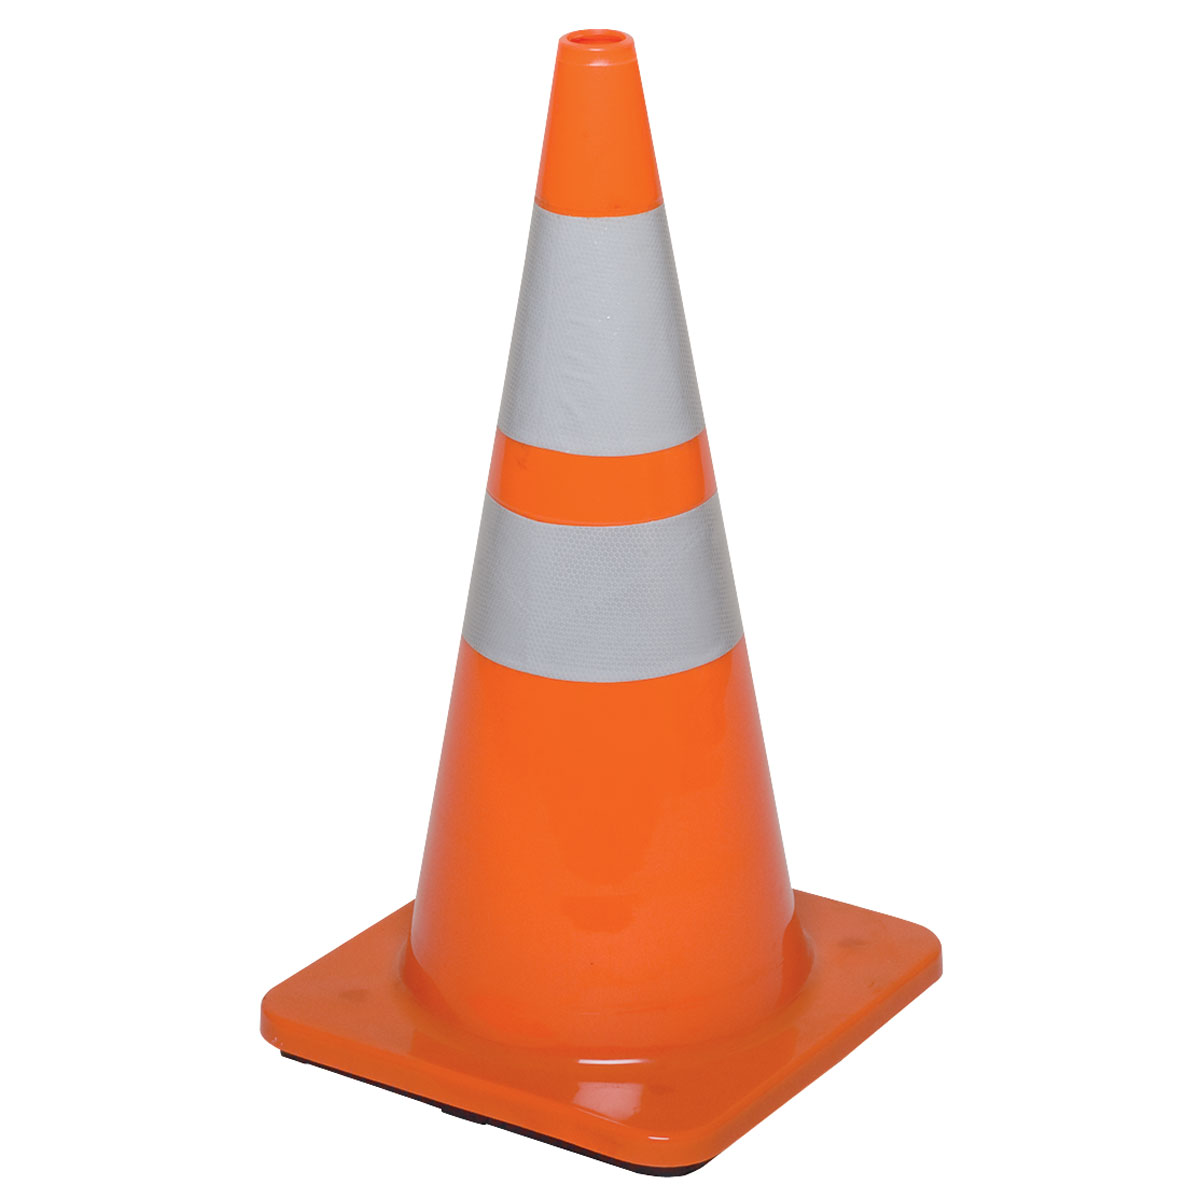 Cone In Real Life: File:Kevan Miller .jpg